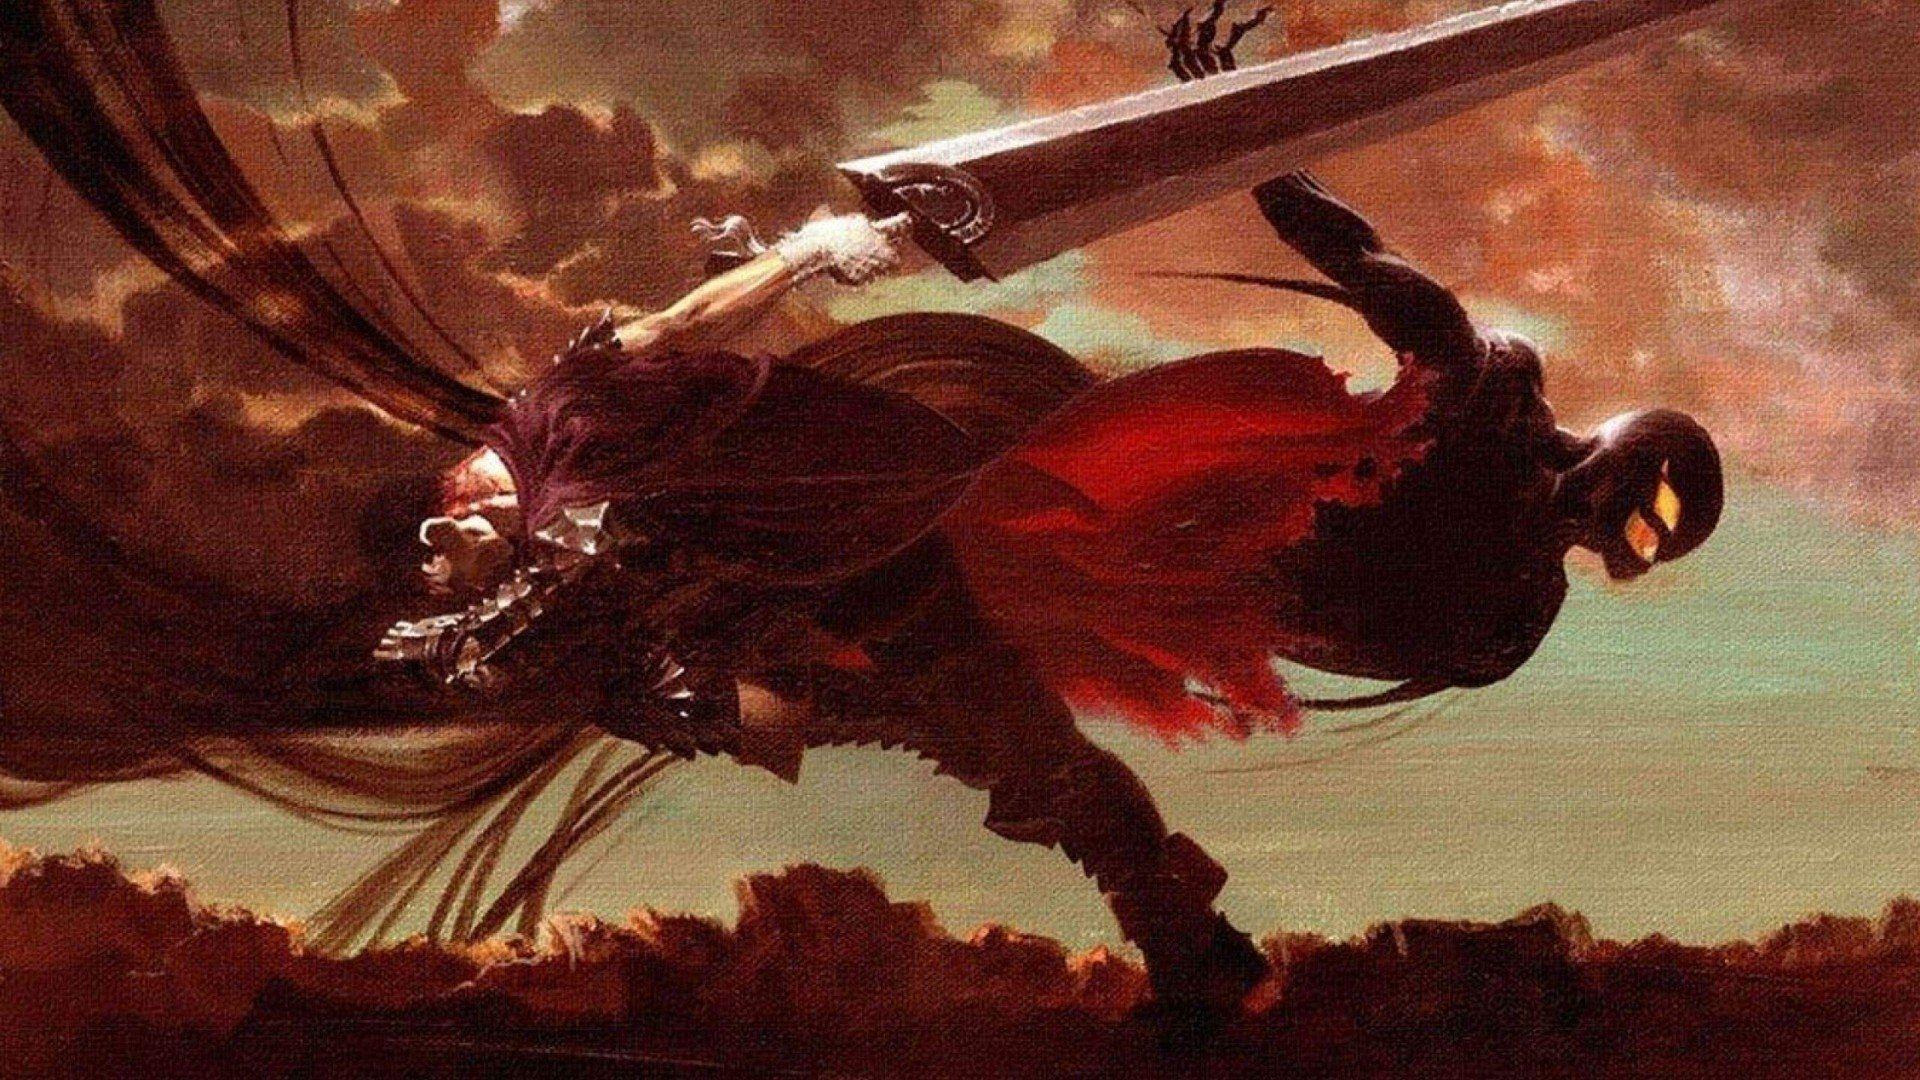 477 Berserk HD Wallpapers